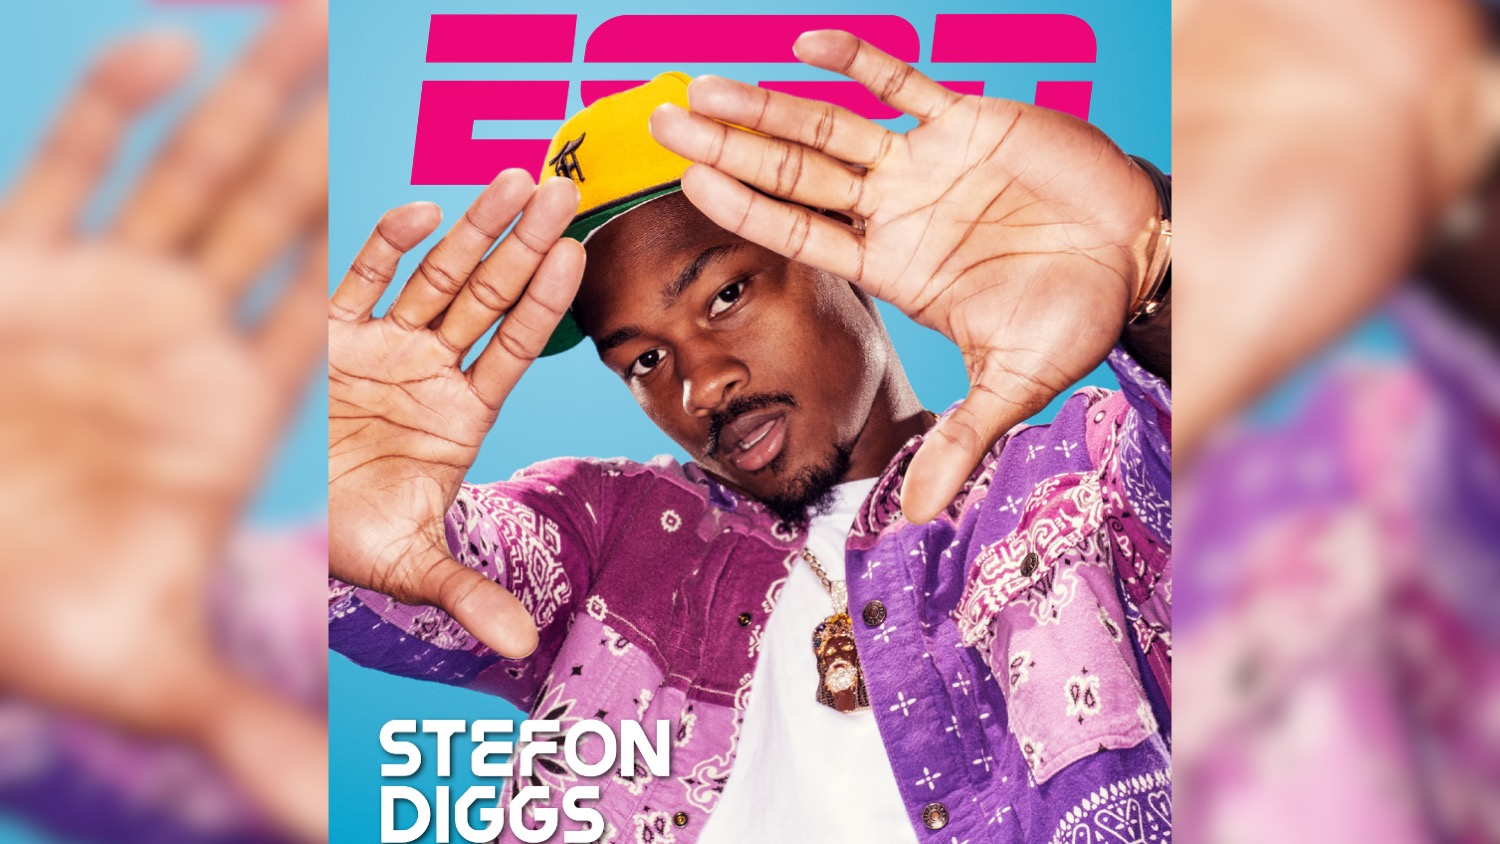 An ESPN cover with a photo of Stefon Diggs by Clay Patrick McBride.